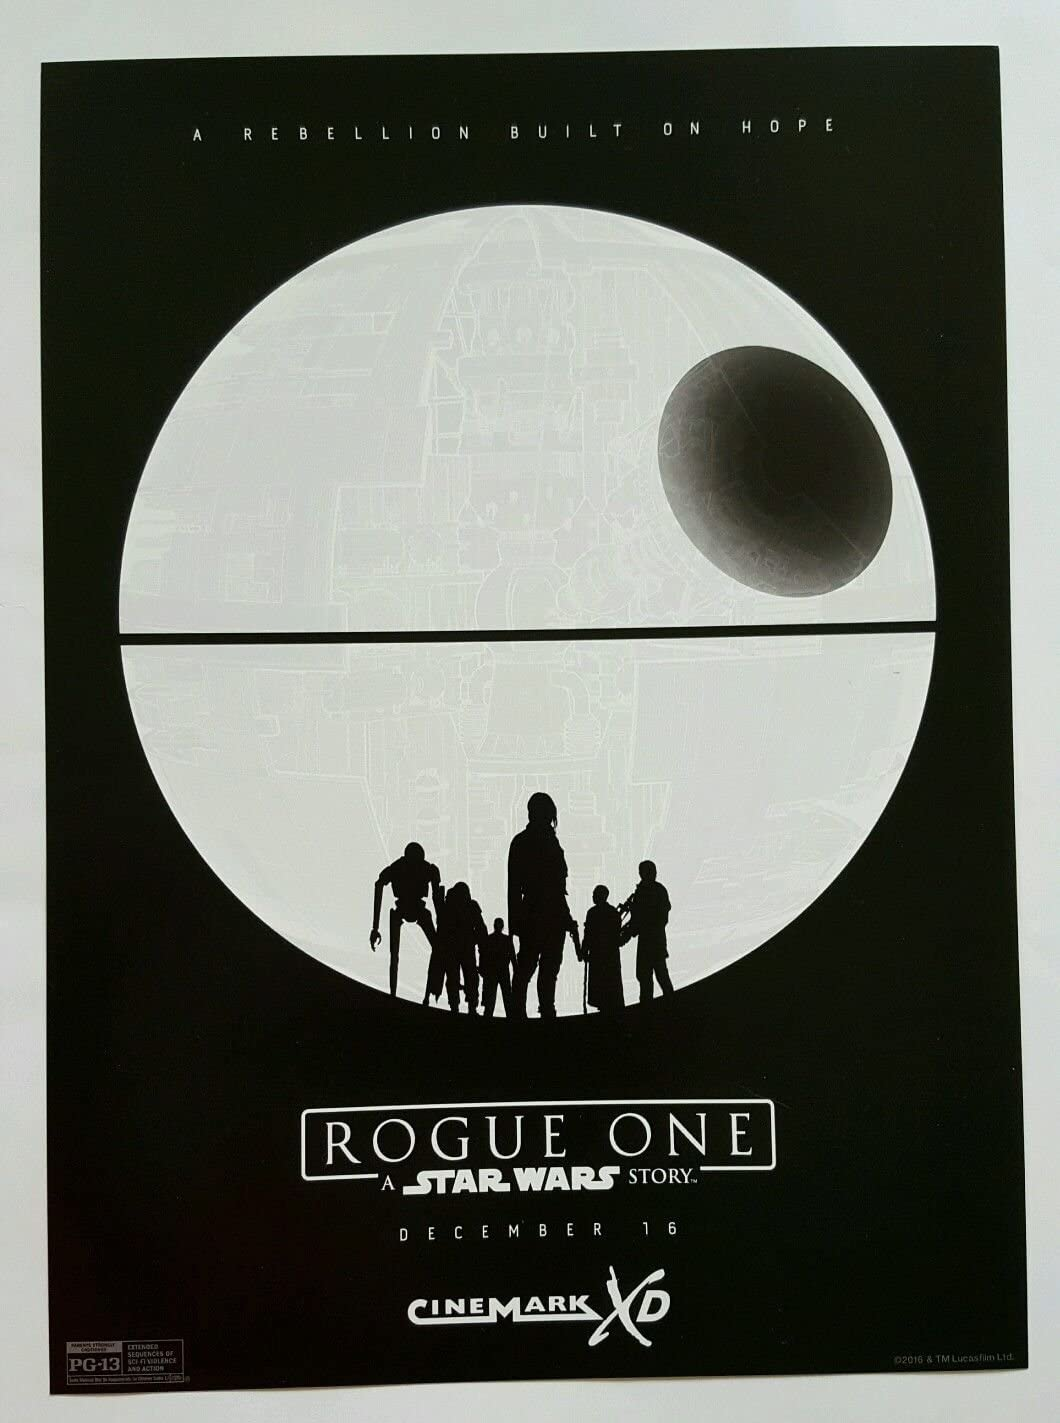 New Art Print 2016 Promo Poster for Rogue One A Star Wars Story